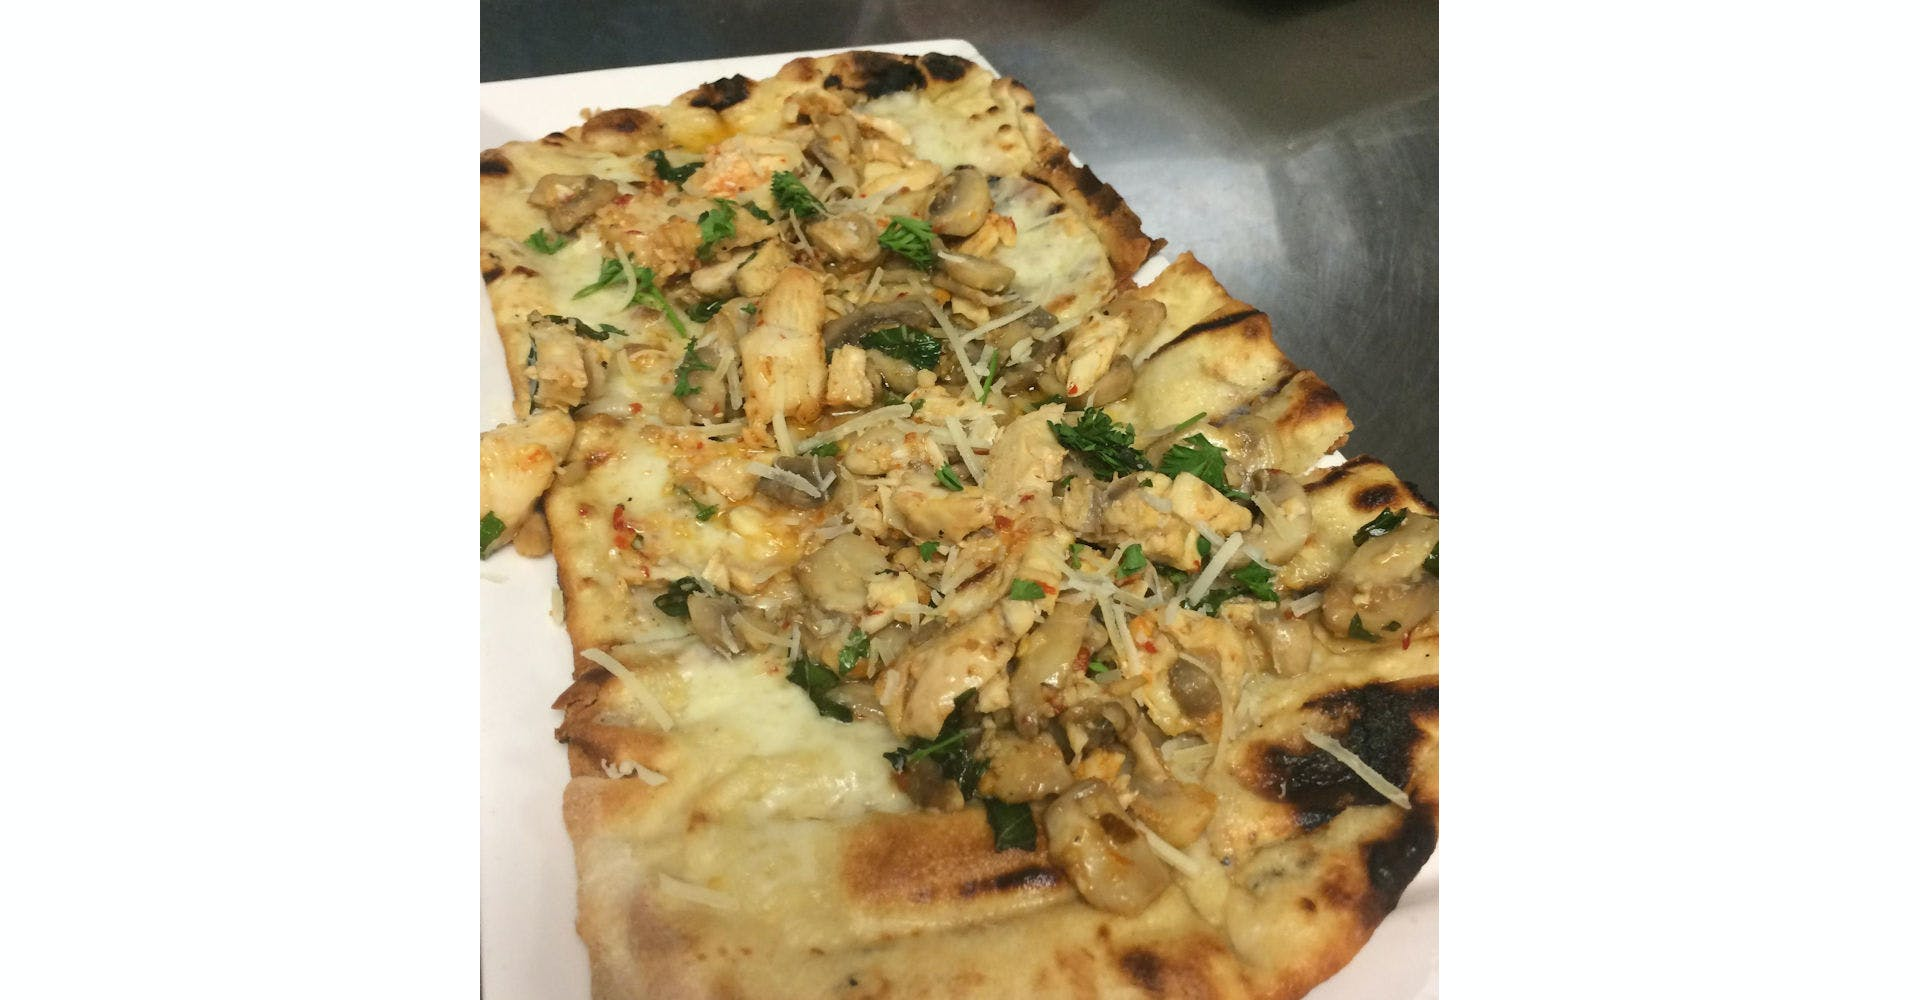 Spicy Garlic Flatbread from Grazies Italian Grill in Stevens Point, WI